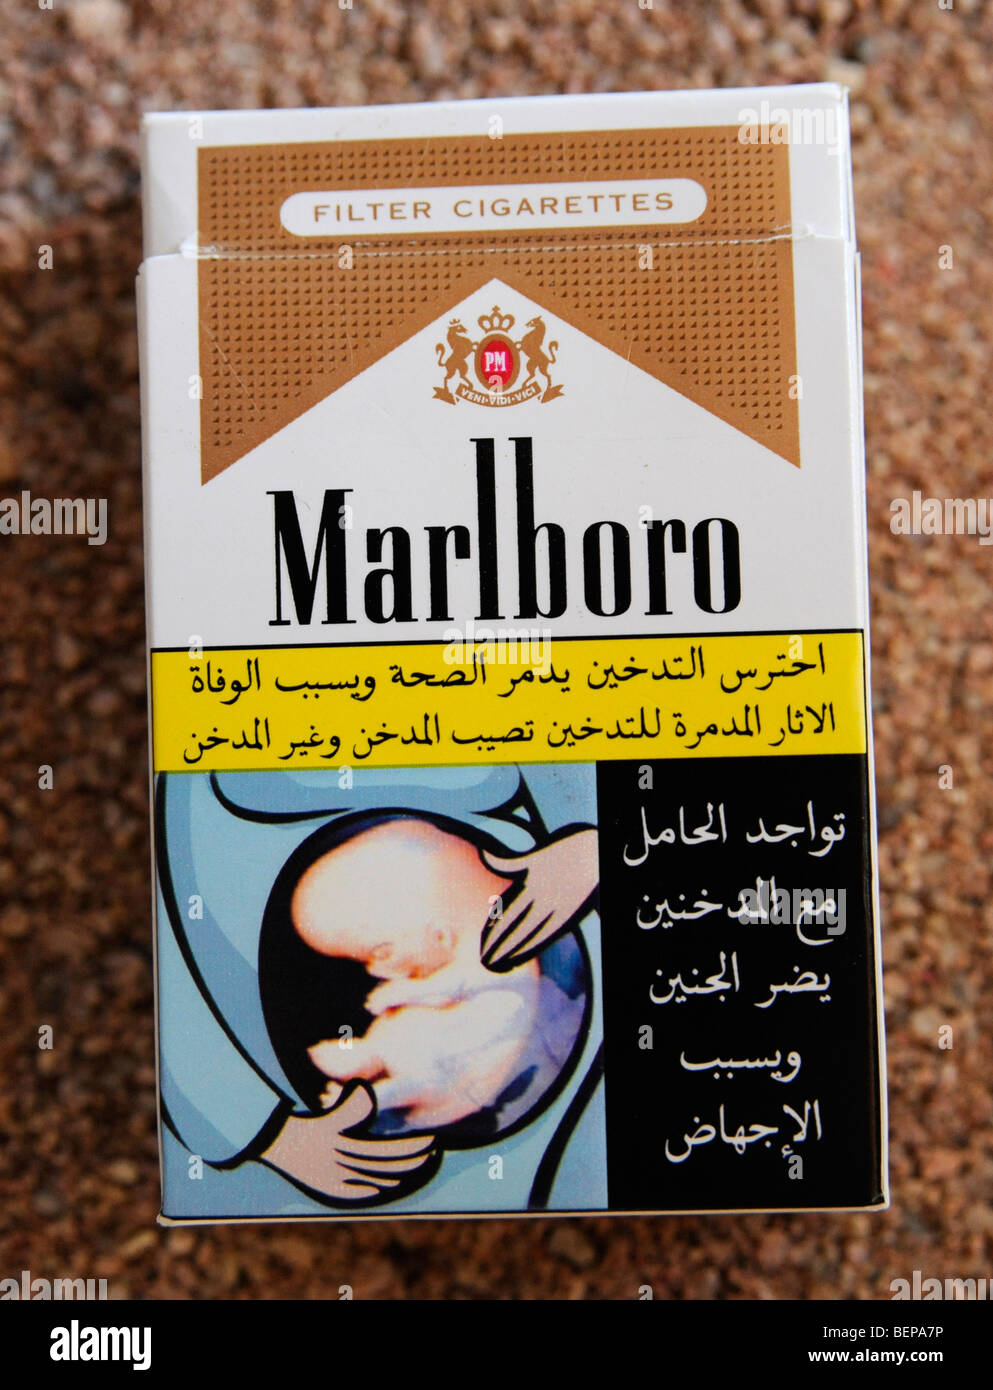 A health warning in arabic on a packet of Marlboro cigarettes - Stock Image